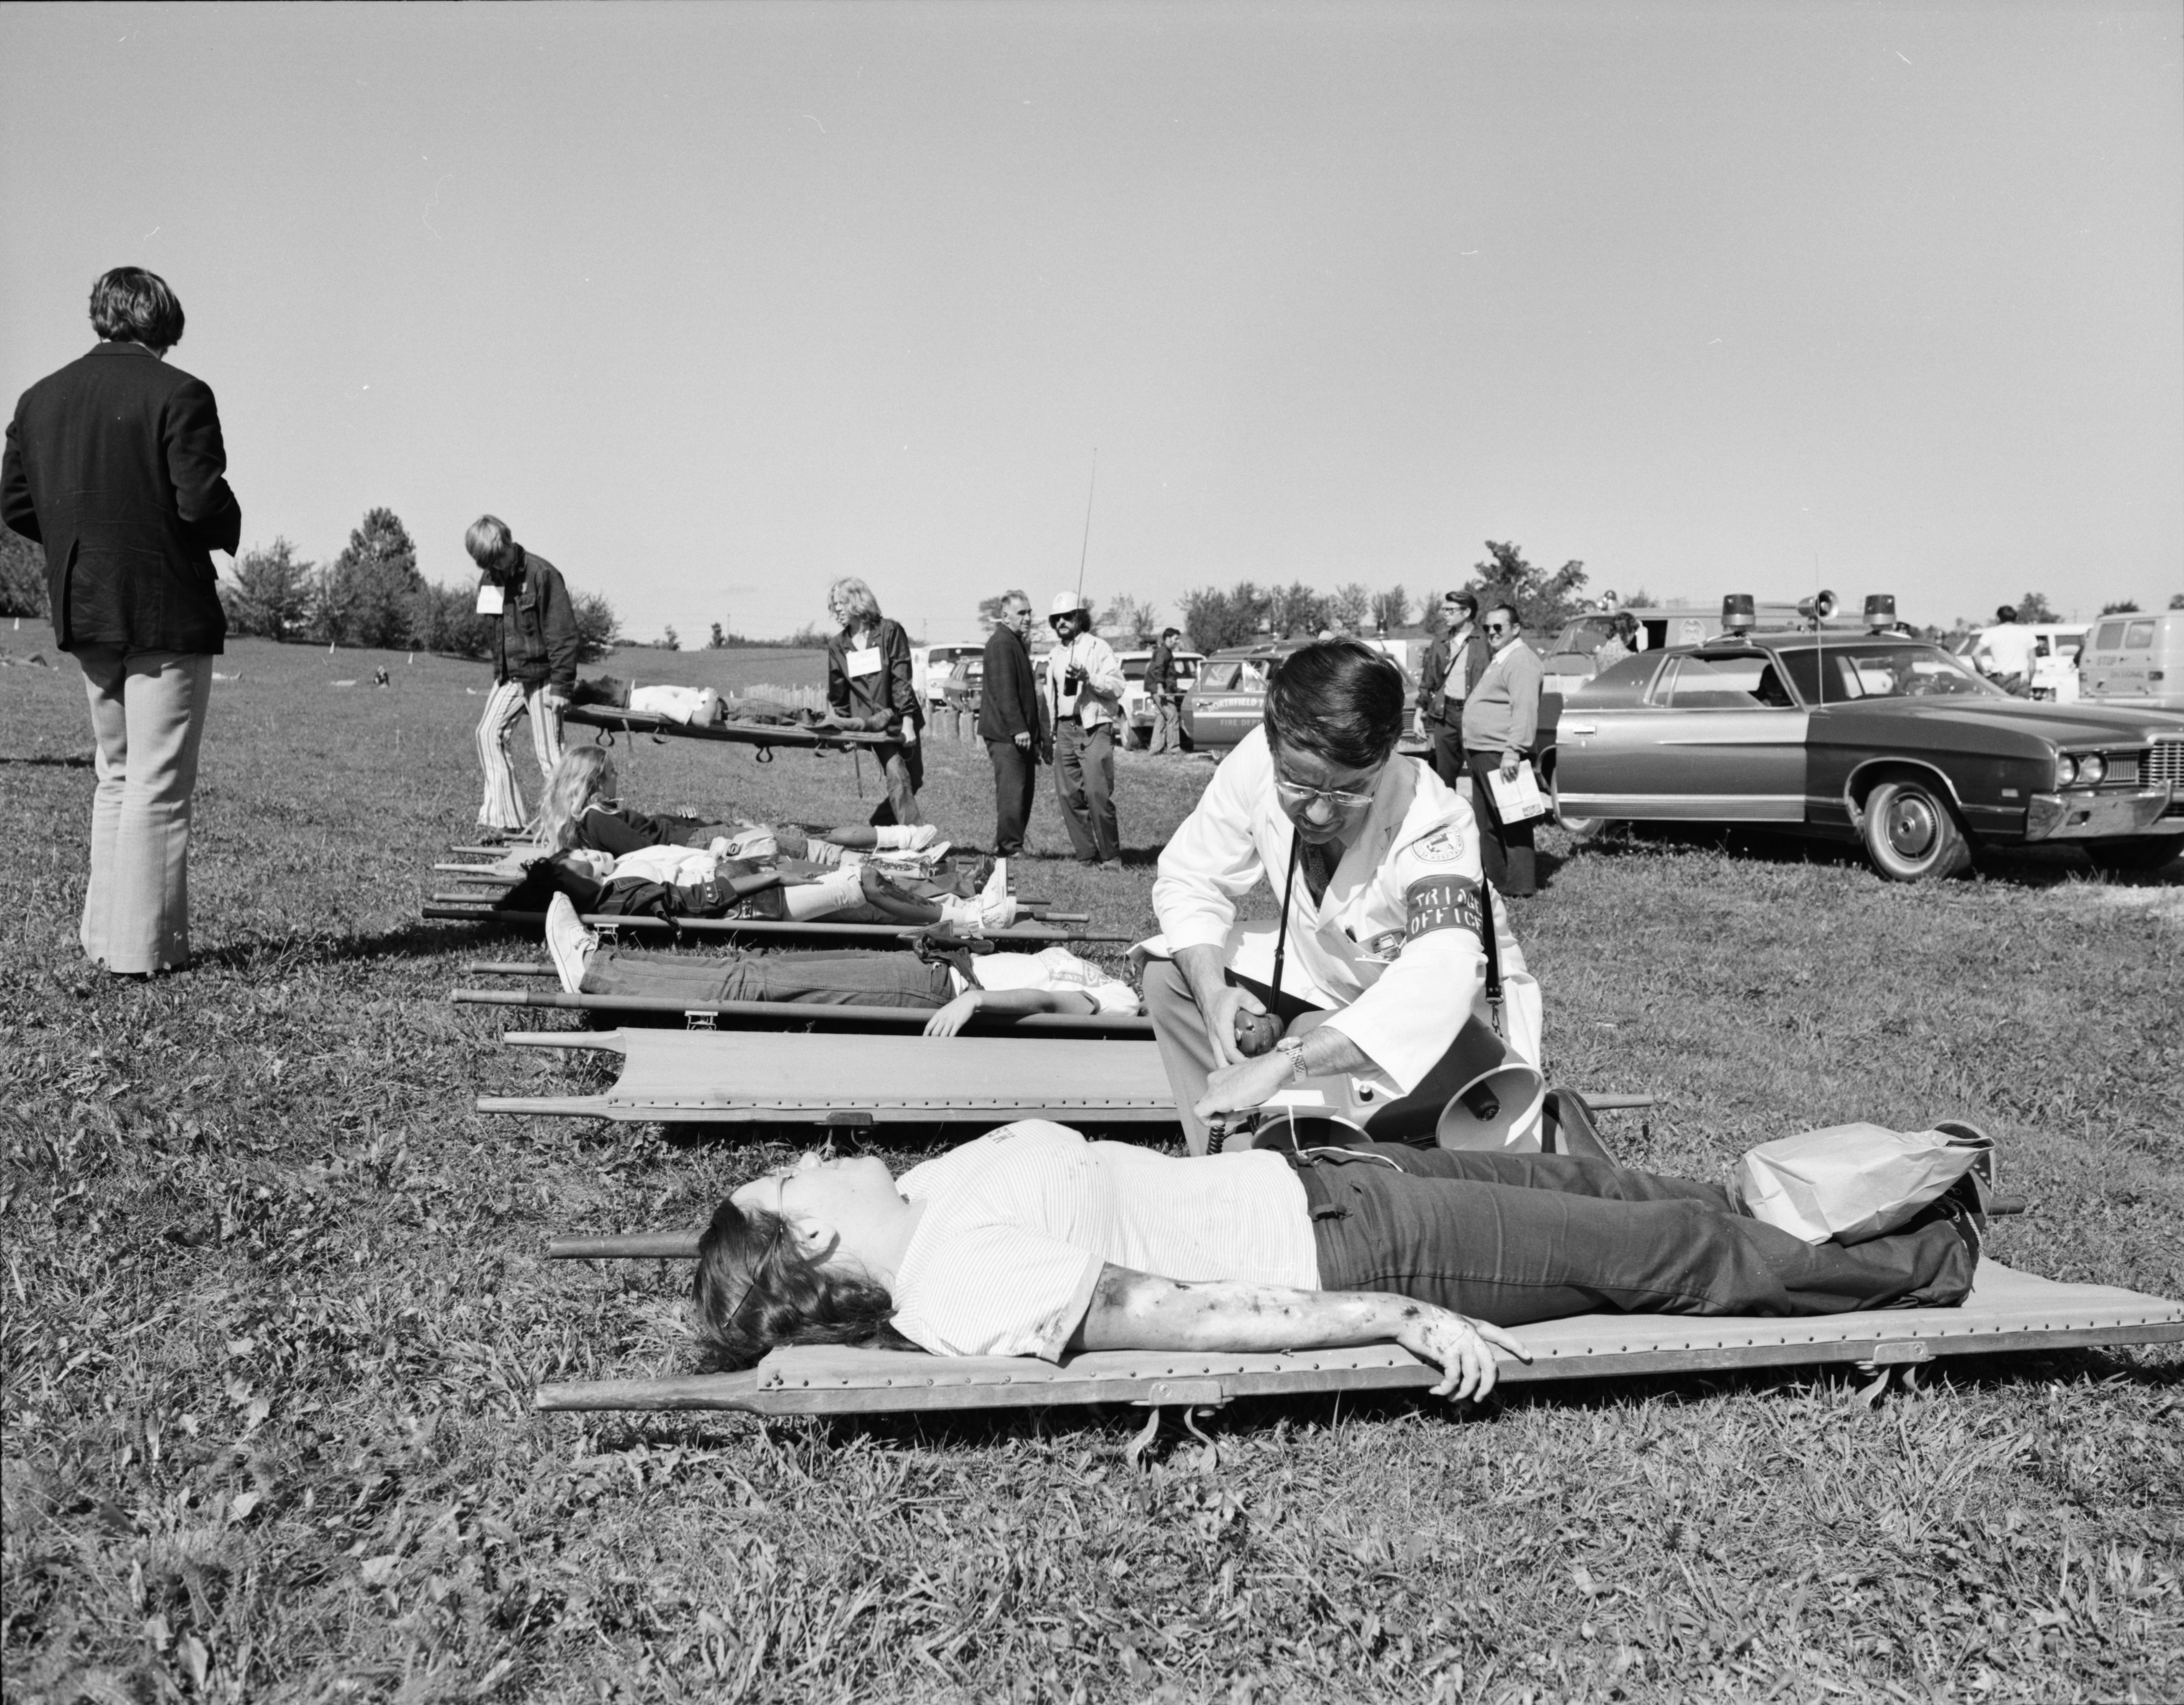 Mock Disaster Training Exercise, September 1972 image